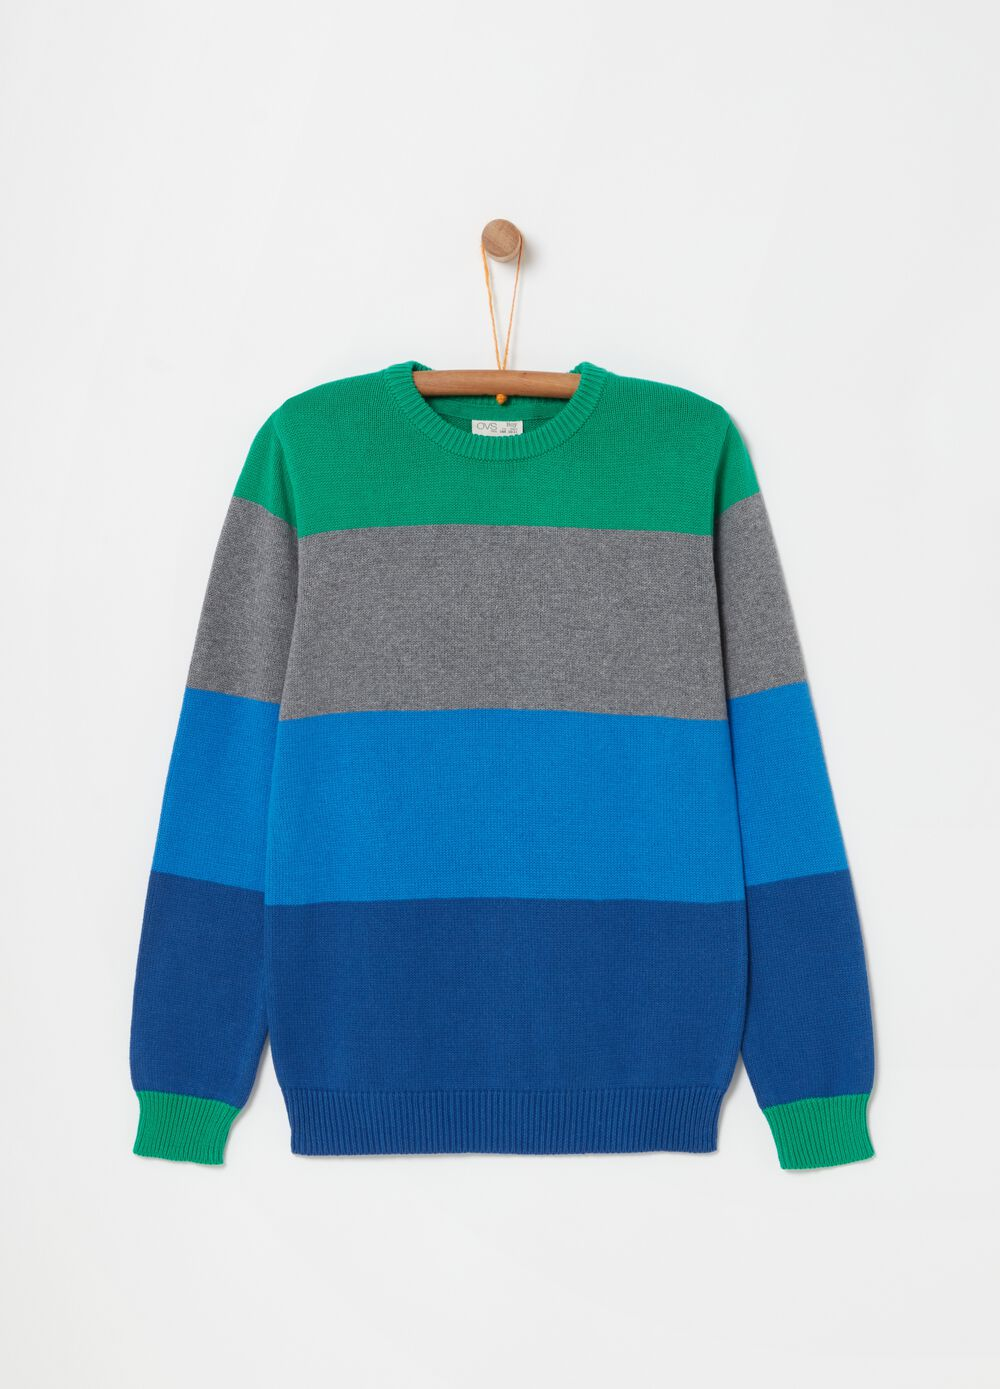 Striped top with long sleeves